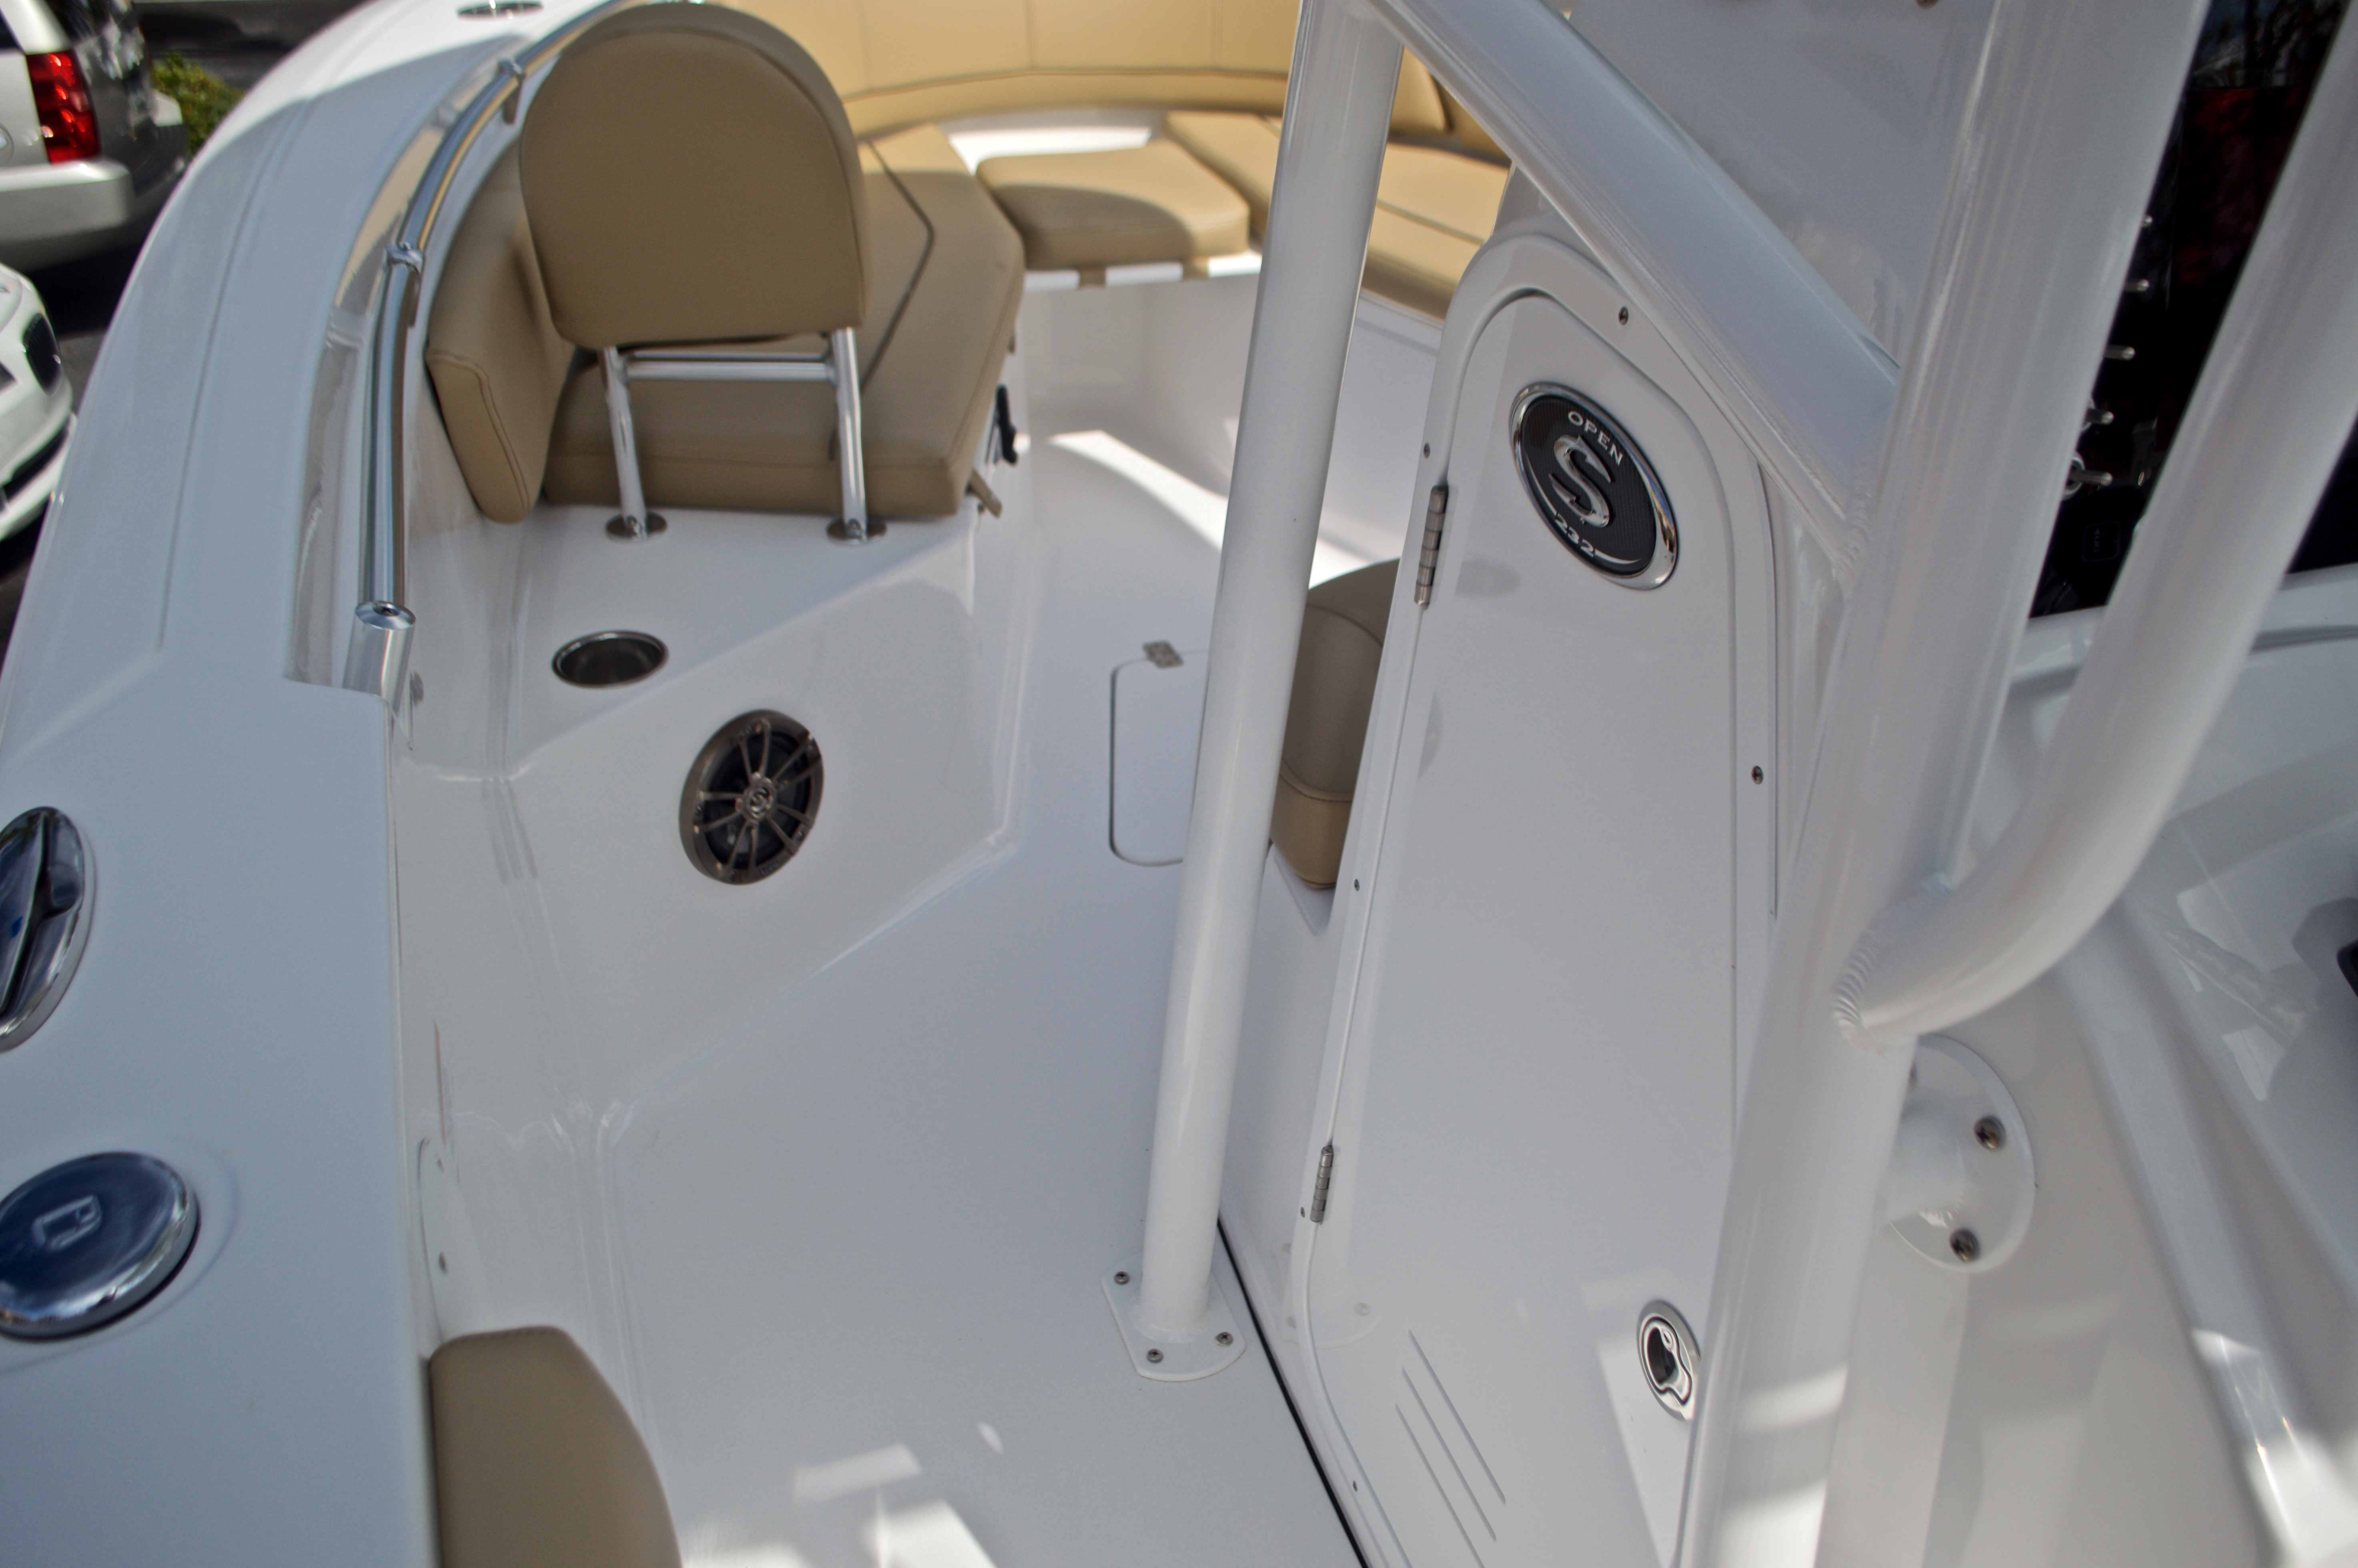 Thumbnail 39 for New 2017 Sportsman Open 232 Center Console boat for sale in West Palm Beach, FL